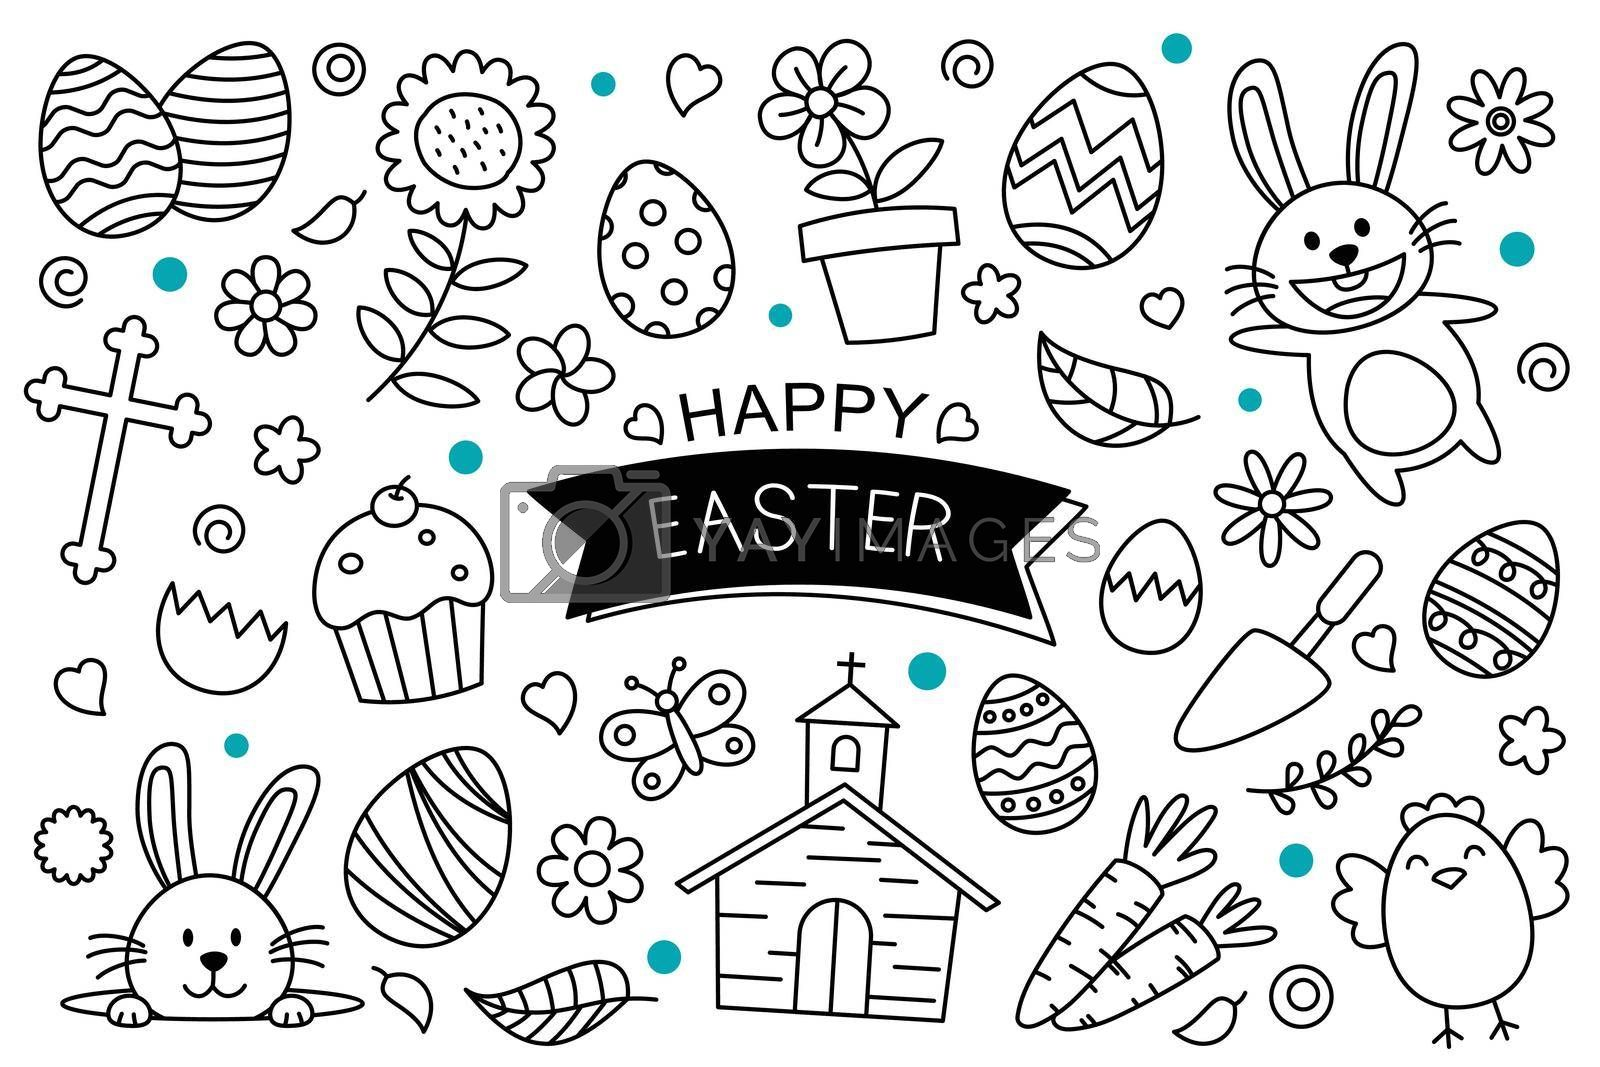 Easter eggs doodle hand drawn on white background. Happy easter isolated element objects.